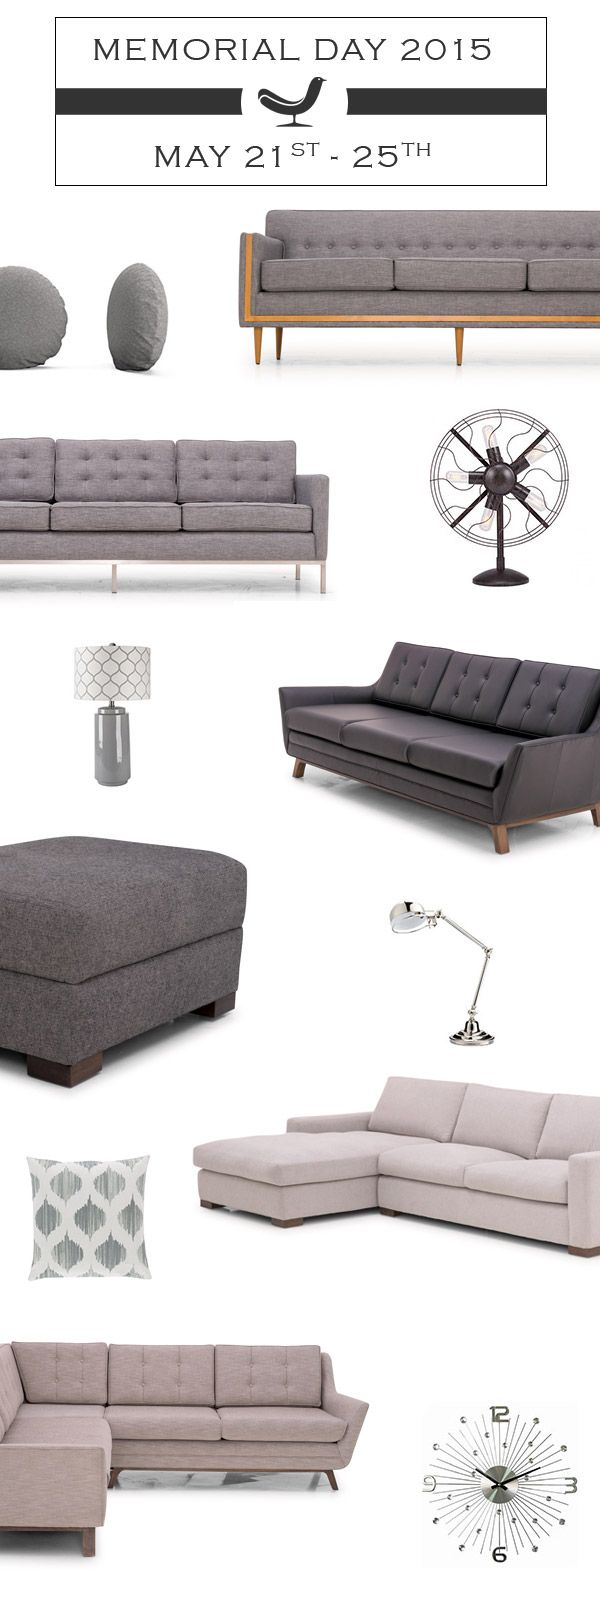 Joybird A Mid Century Modern Online Furniture Company Based Out Of L.A.  Design At Your